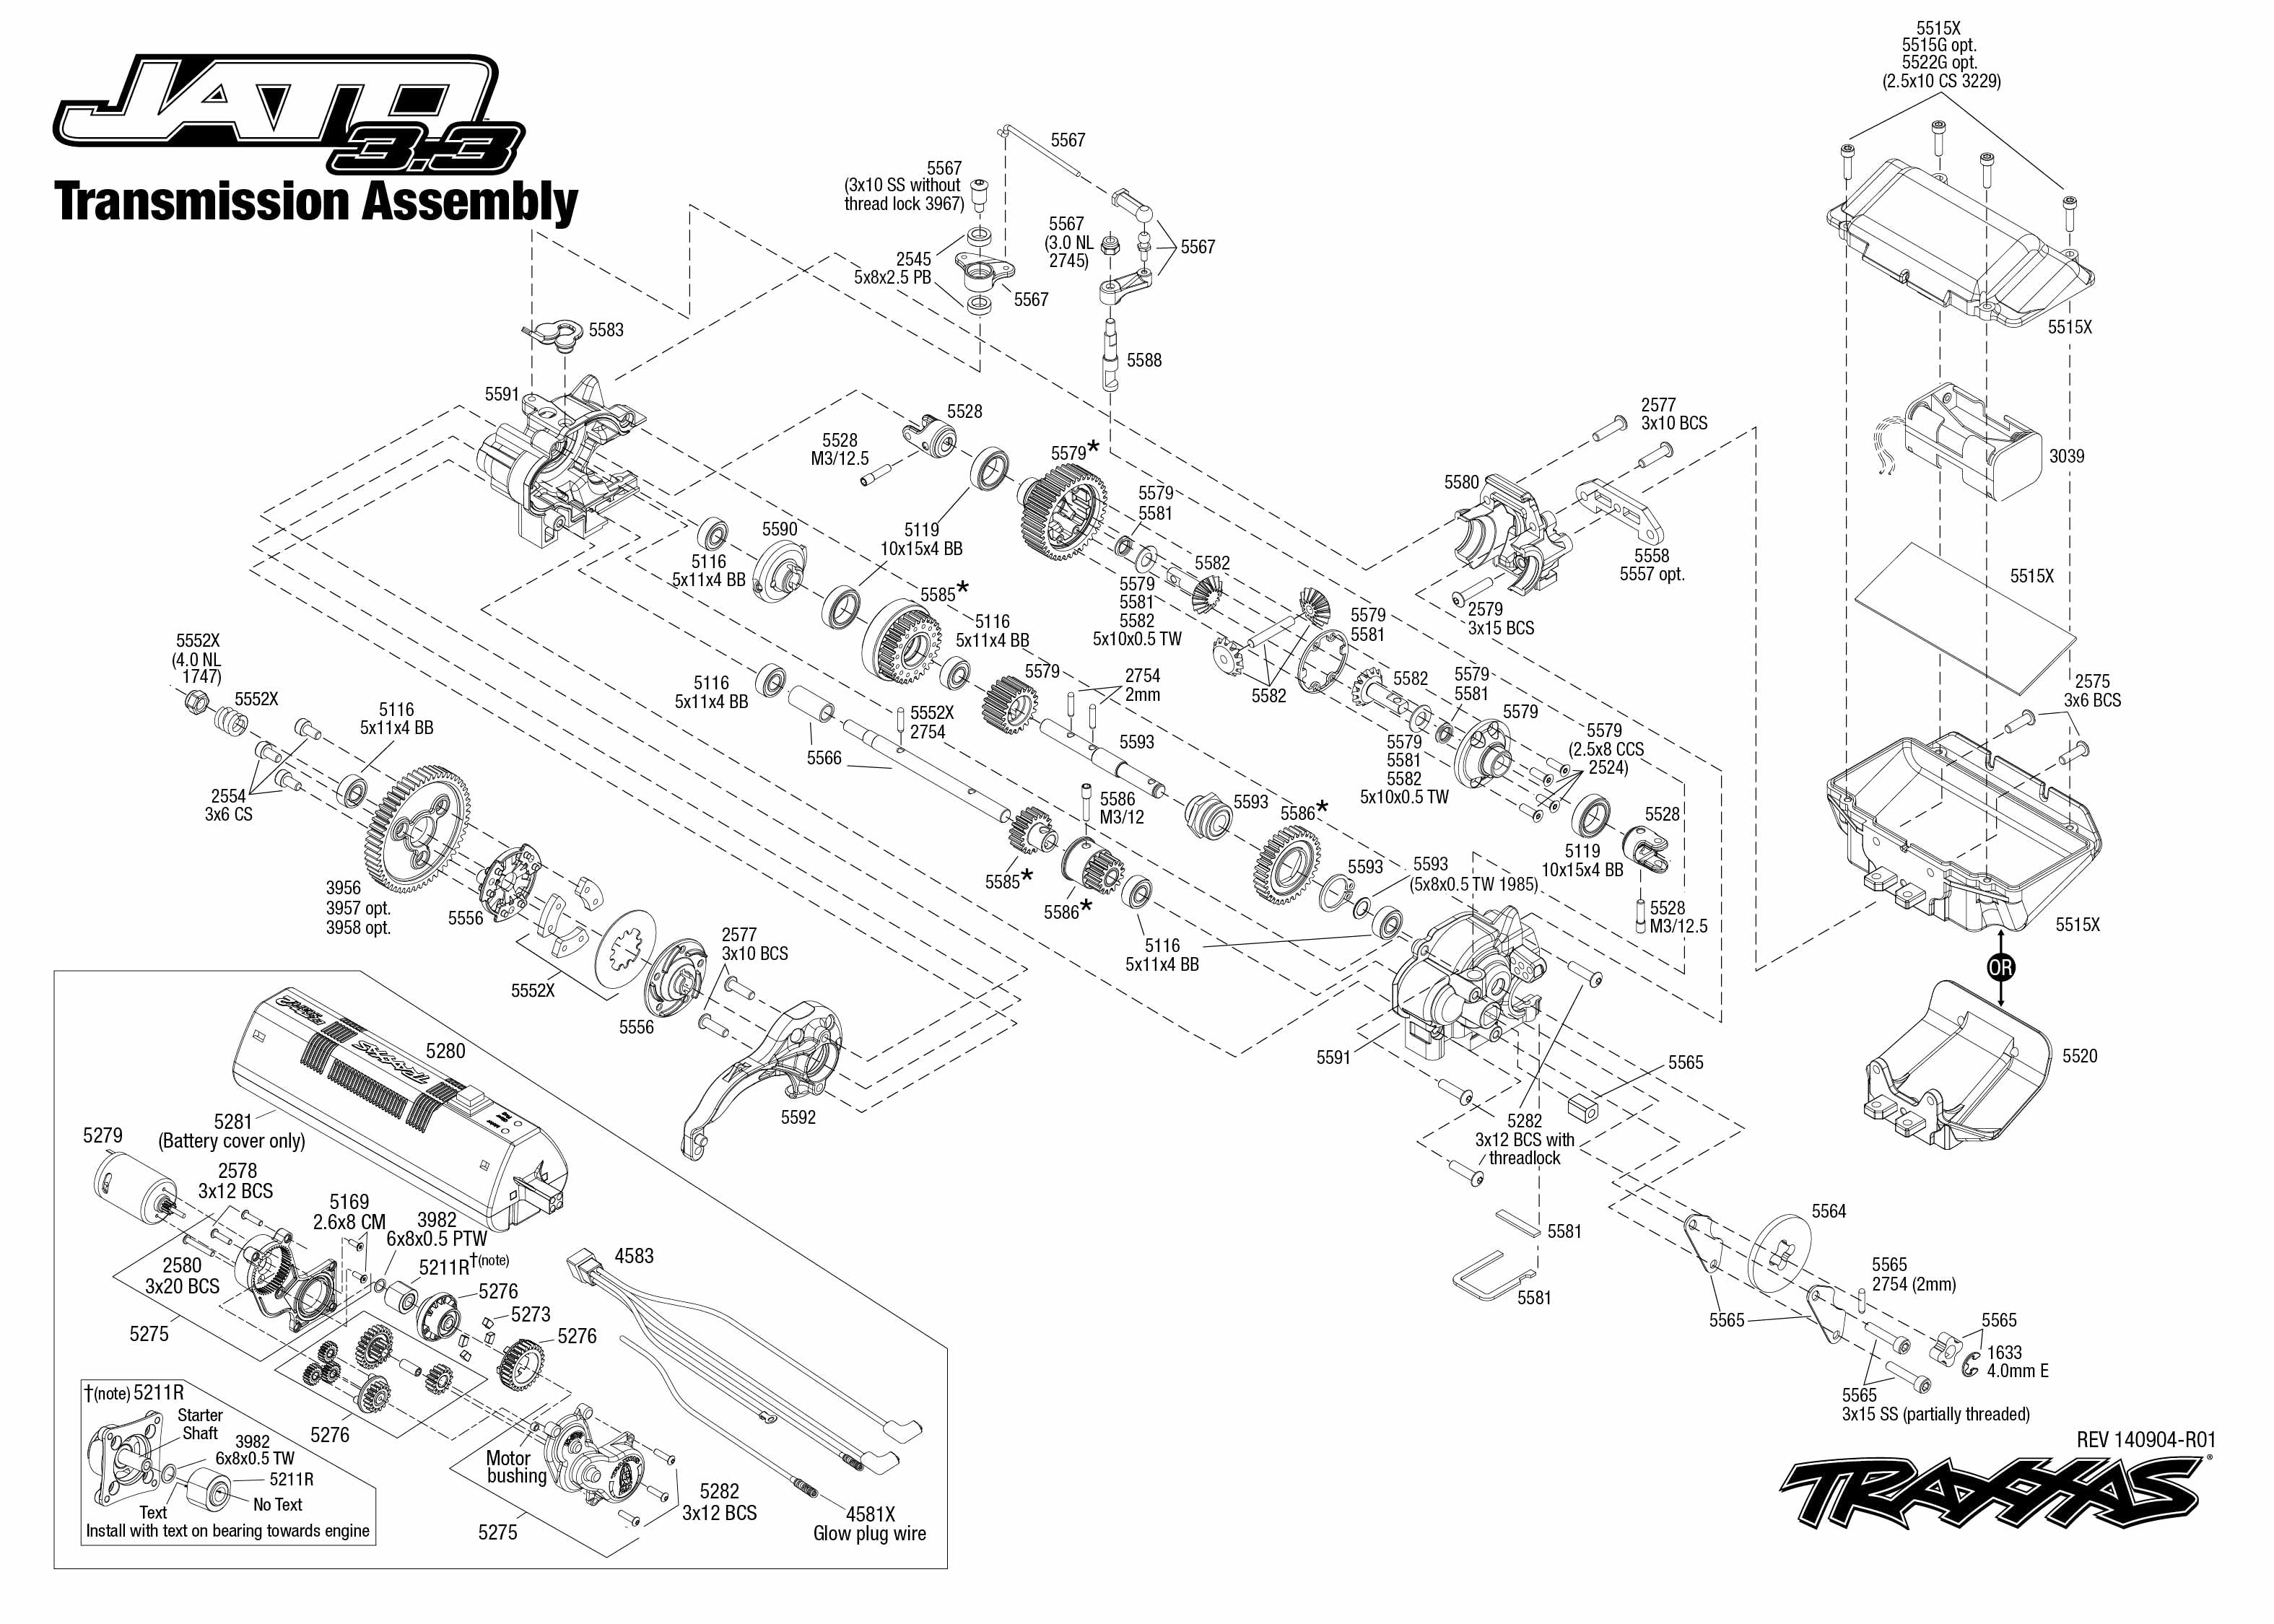 [SCHEMATICS_43NM]  Traxxas Jato Wiring Diagram - Stereo Wiring Diagram For 2002 Bmw 530i for  Wiring Diagram Schematics | Traxxas 2 5 Engine Diagram |  | Wiring Diagram Schematics